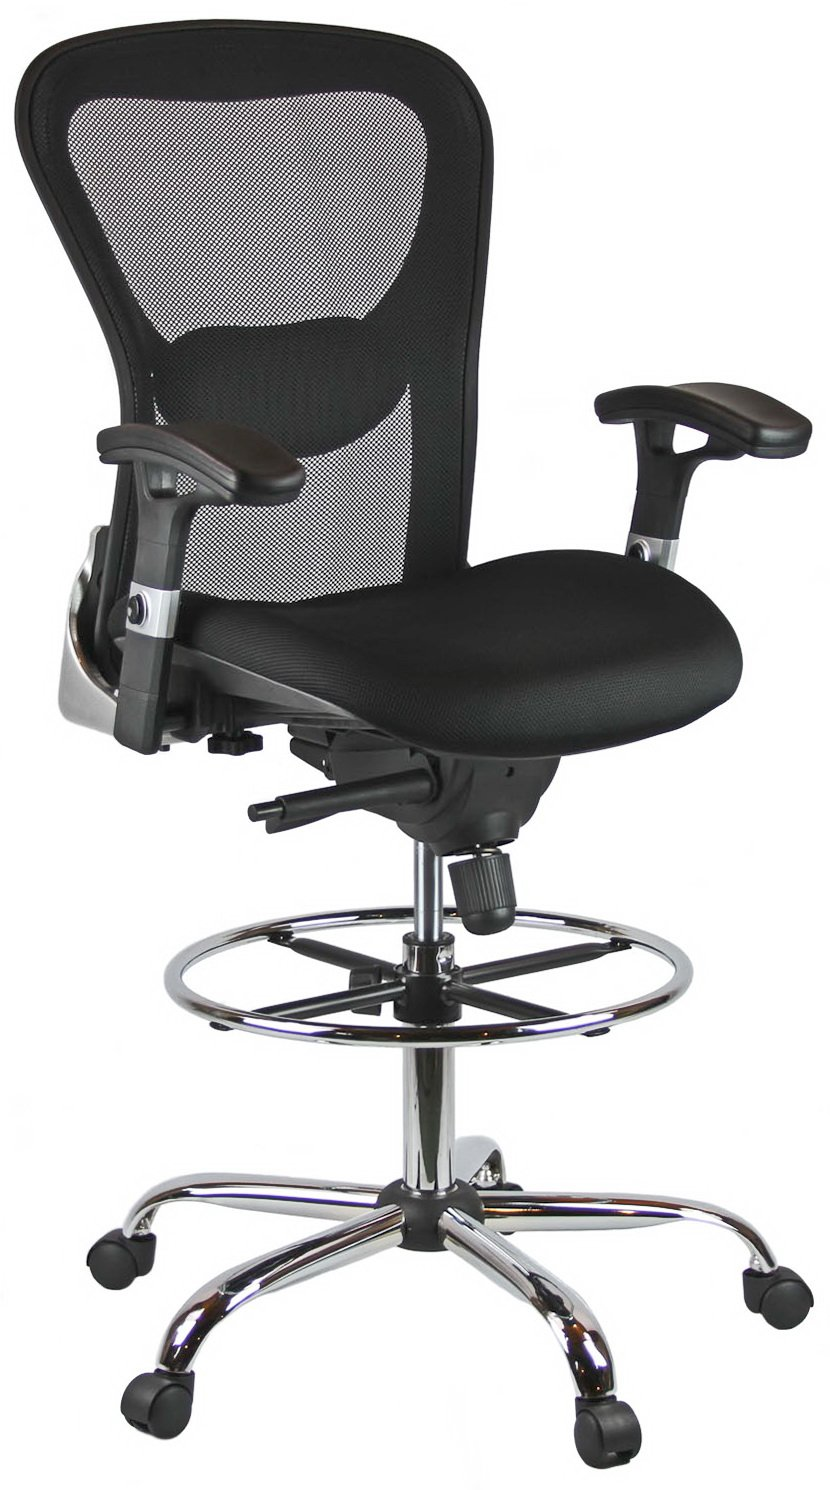 Harwick Deluxe Mesh Drafting Stool with Arms Black